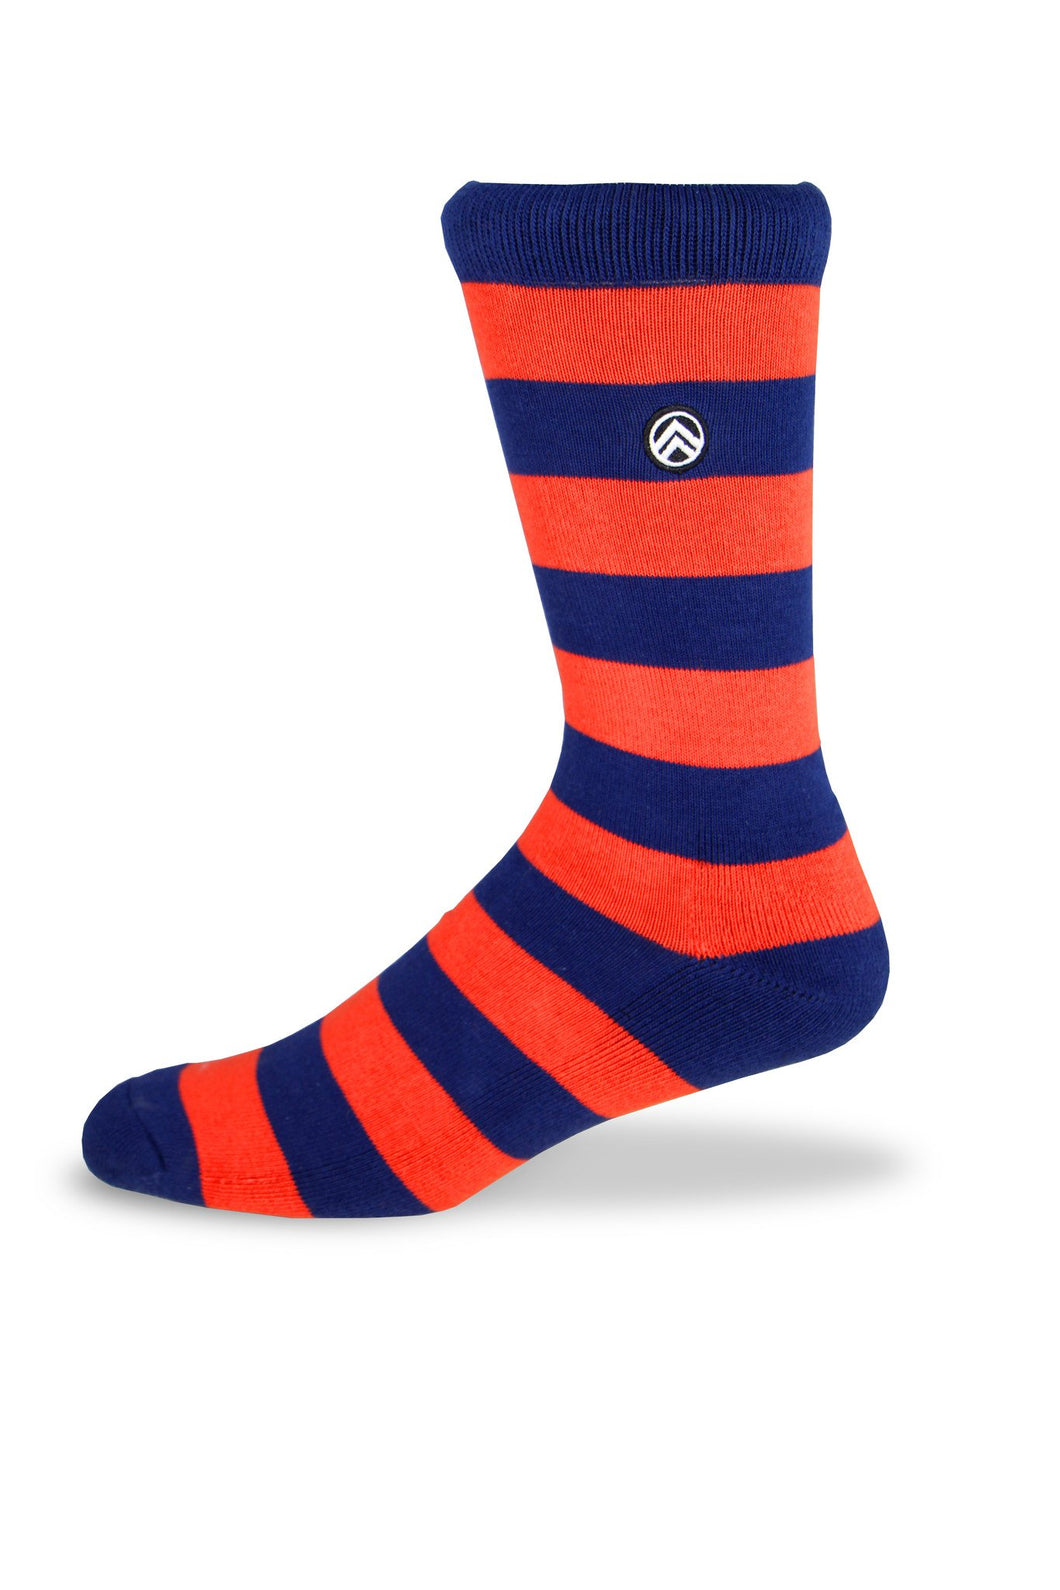 Sky Footwear Socks, Orange & Blue Rugby